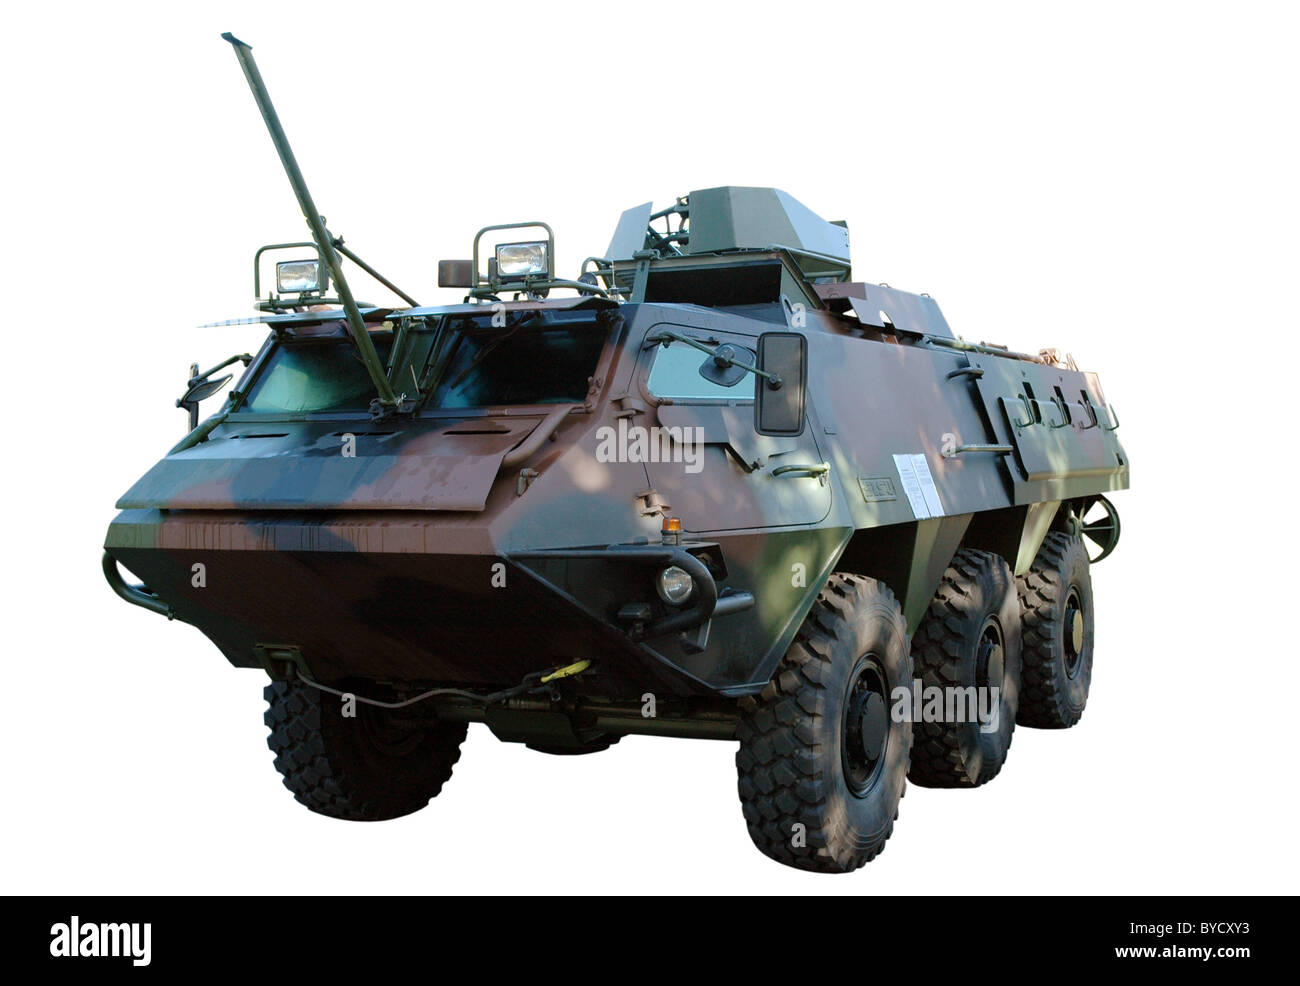 Army armored truck isolated on white. Clipping path included - Stock Image